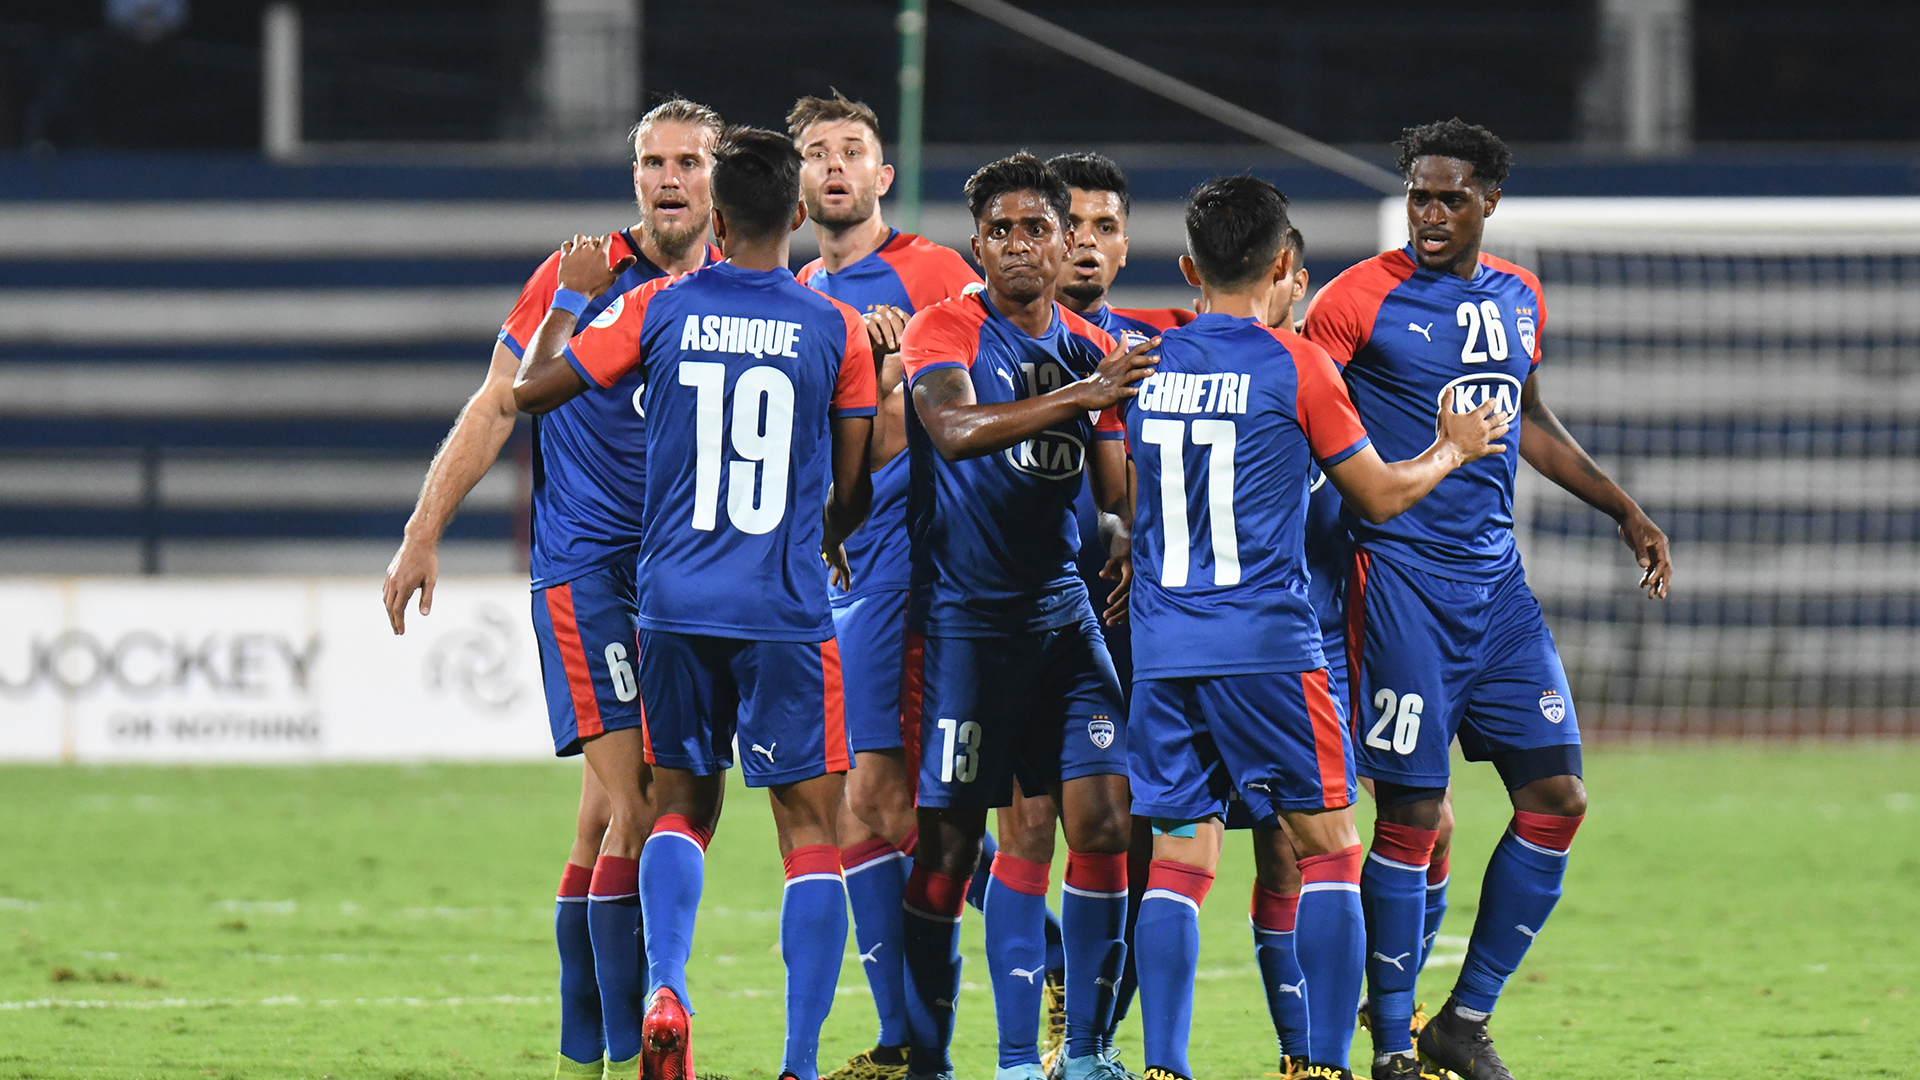 AFC Cup: Biggest wins of Indian clubs in Asia